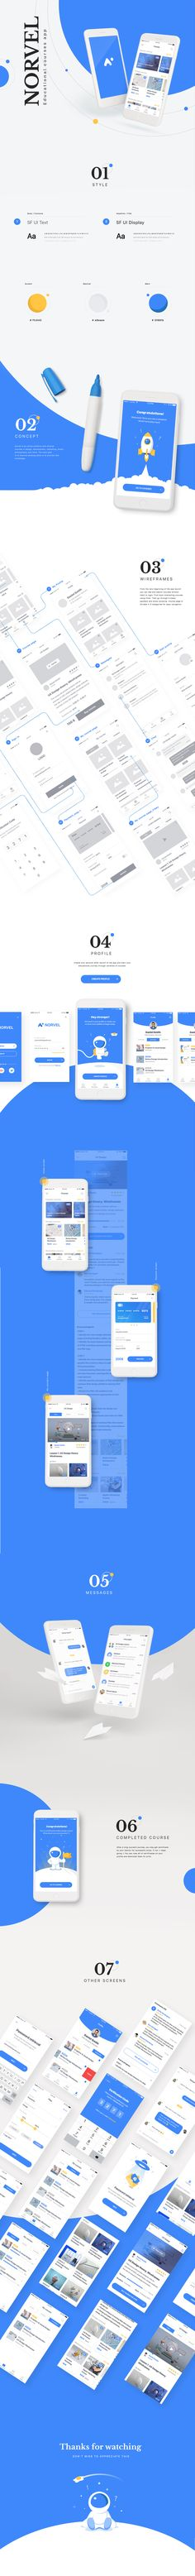 "Check out my @Behance project: ""Norvel Mobile App"" https://www.behance.net/gallery/55441199/Norvel-Mobile-App"